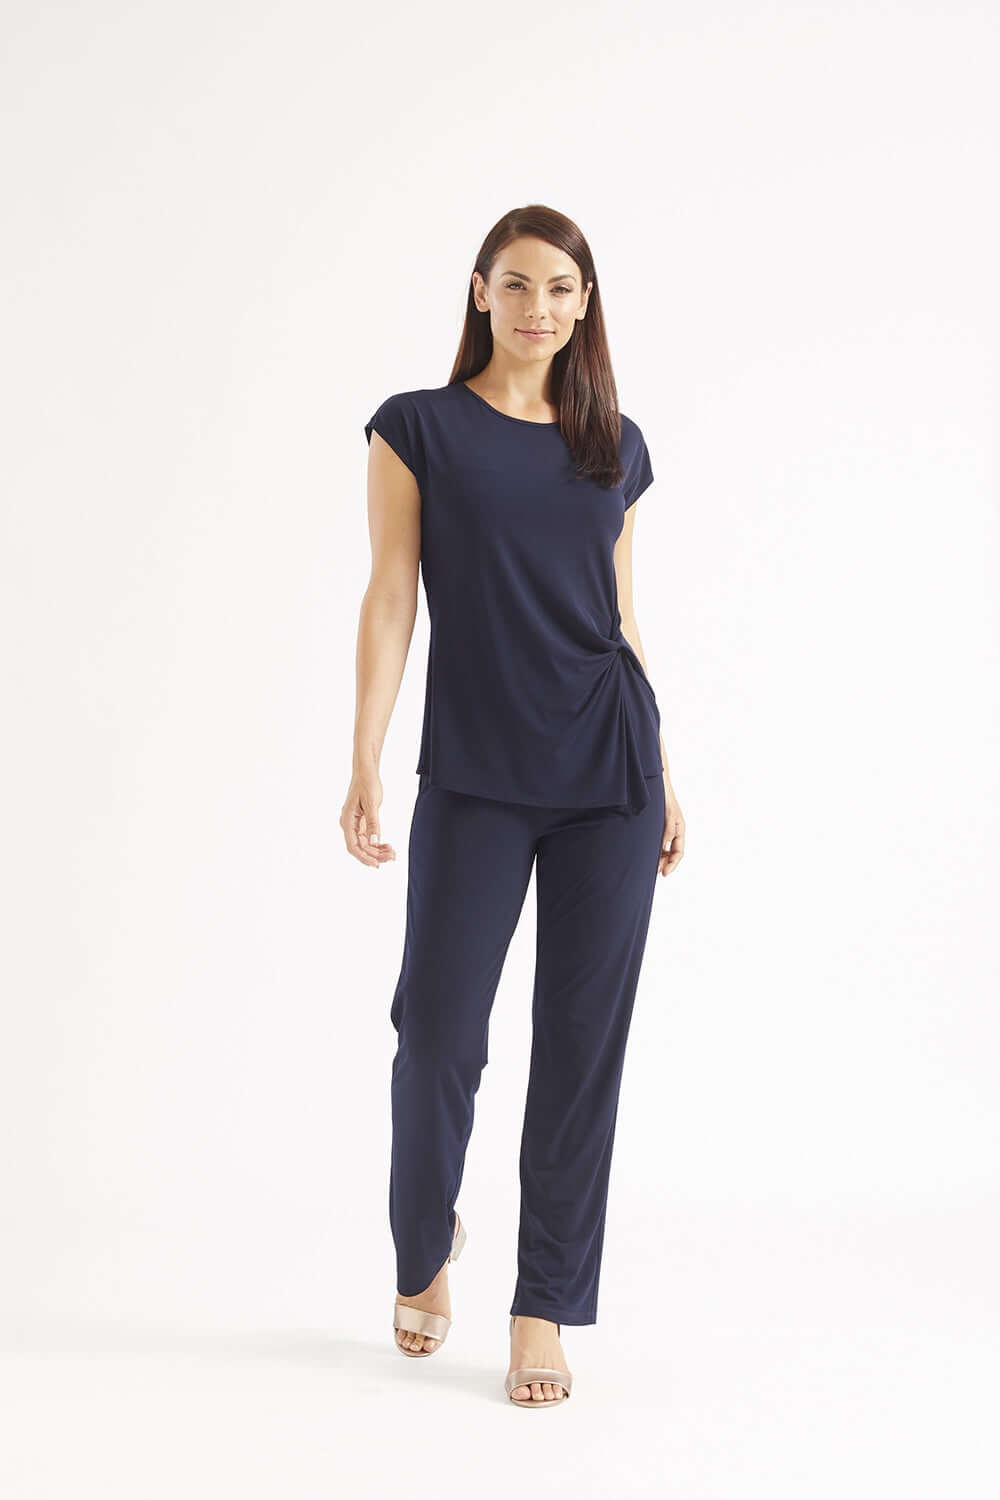 Philosophy Navy LINEAR pant (4561173086293)